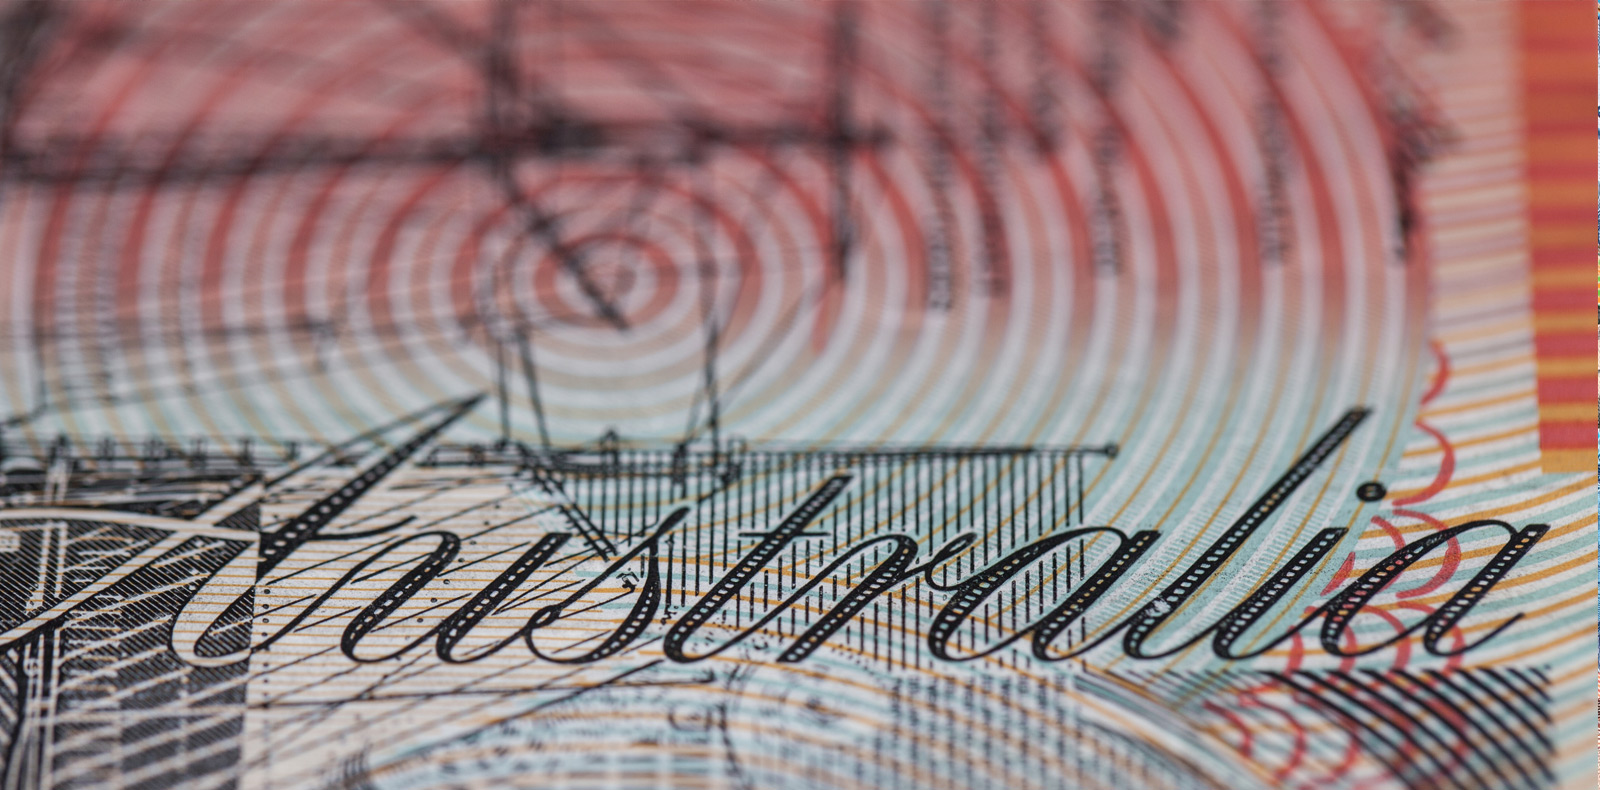 AUD holding strong amidst slowing global appetite